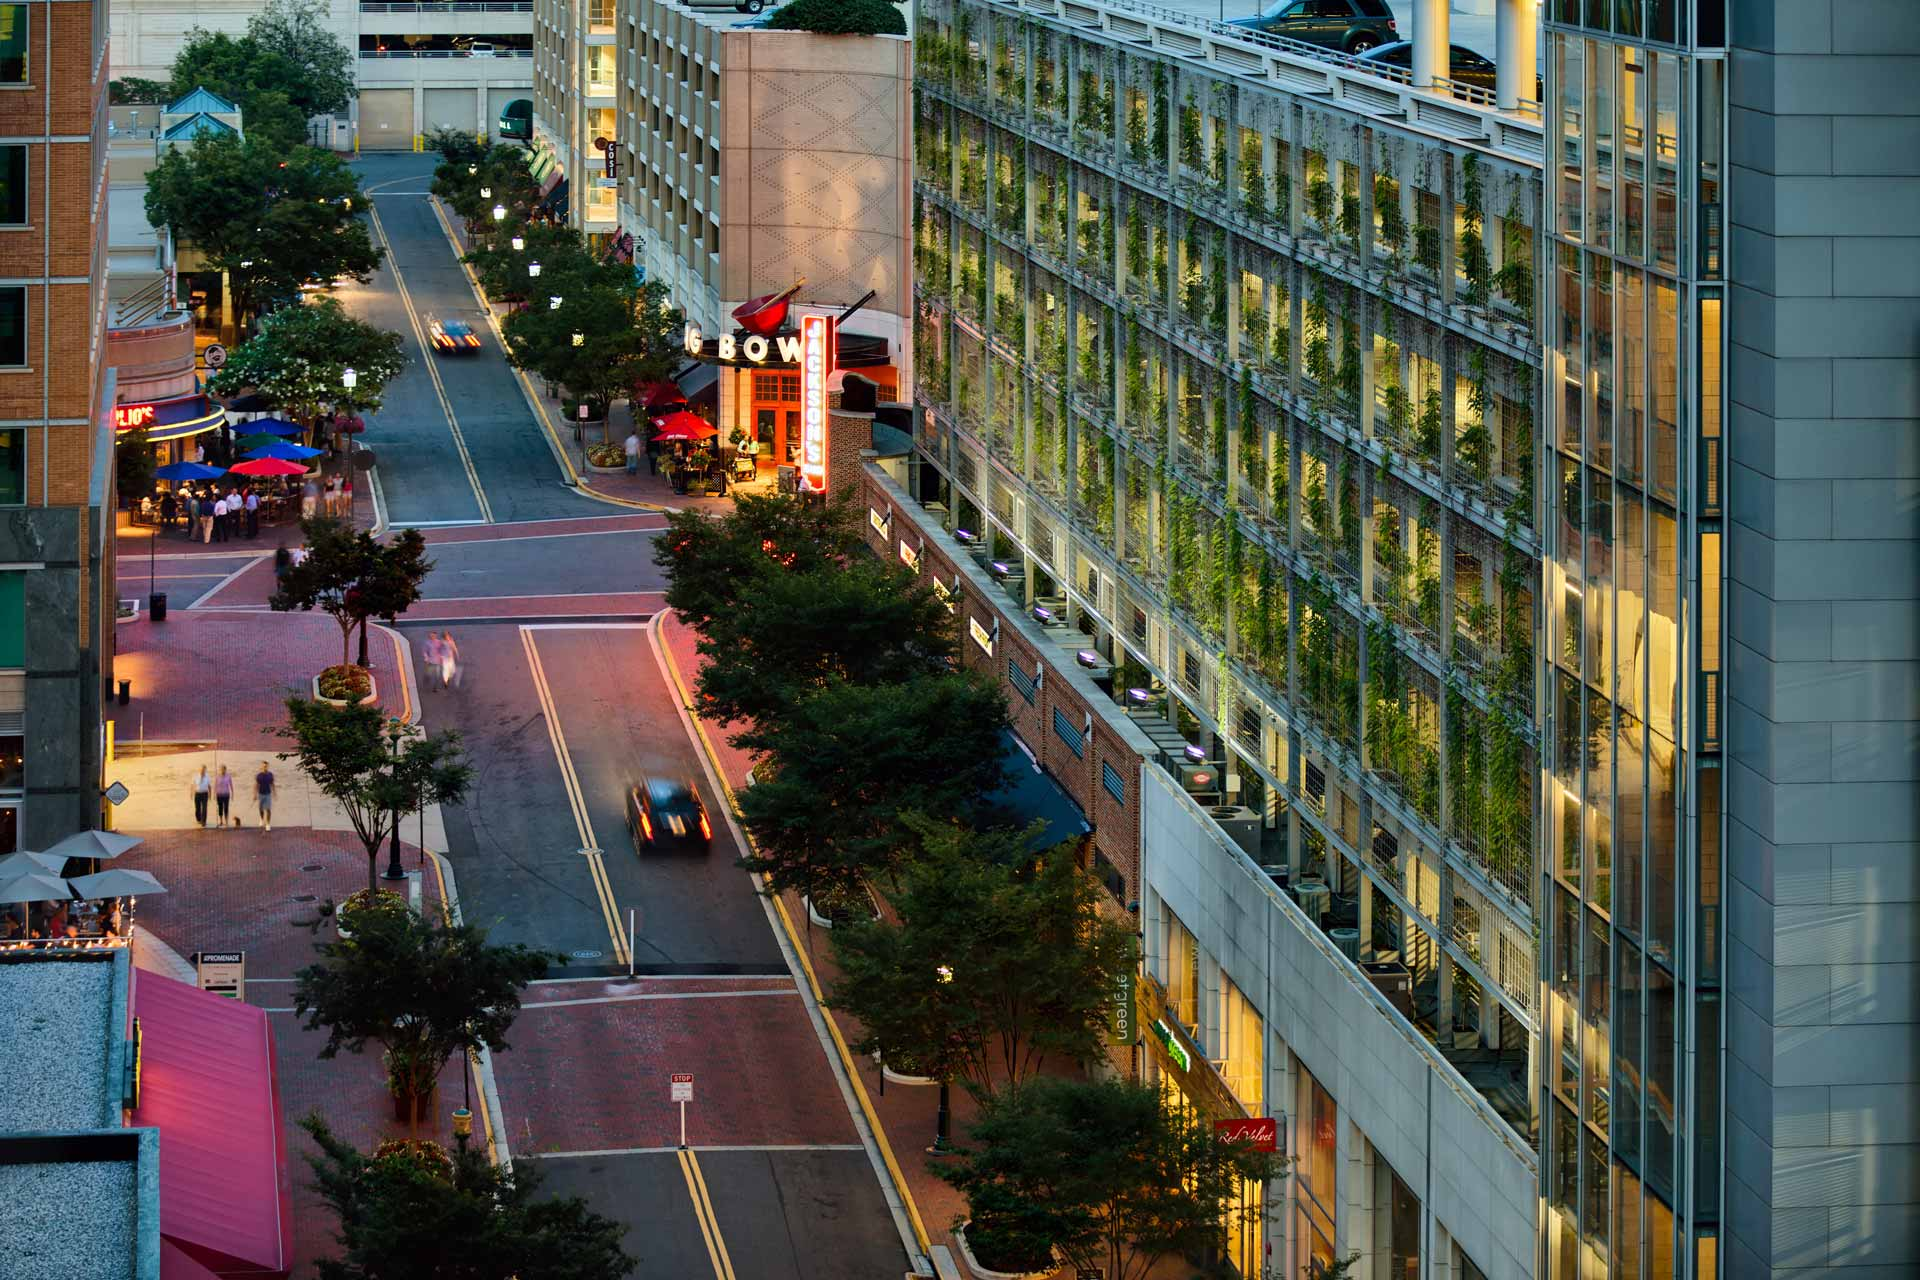 View of Reston Town Center street at dusk